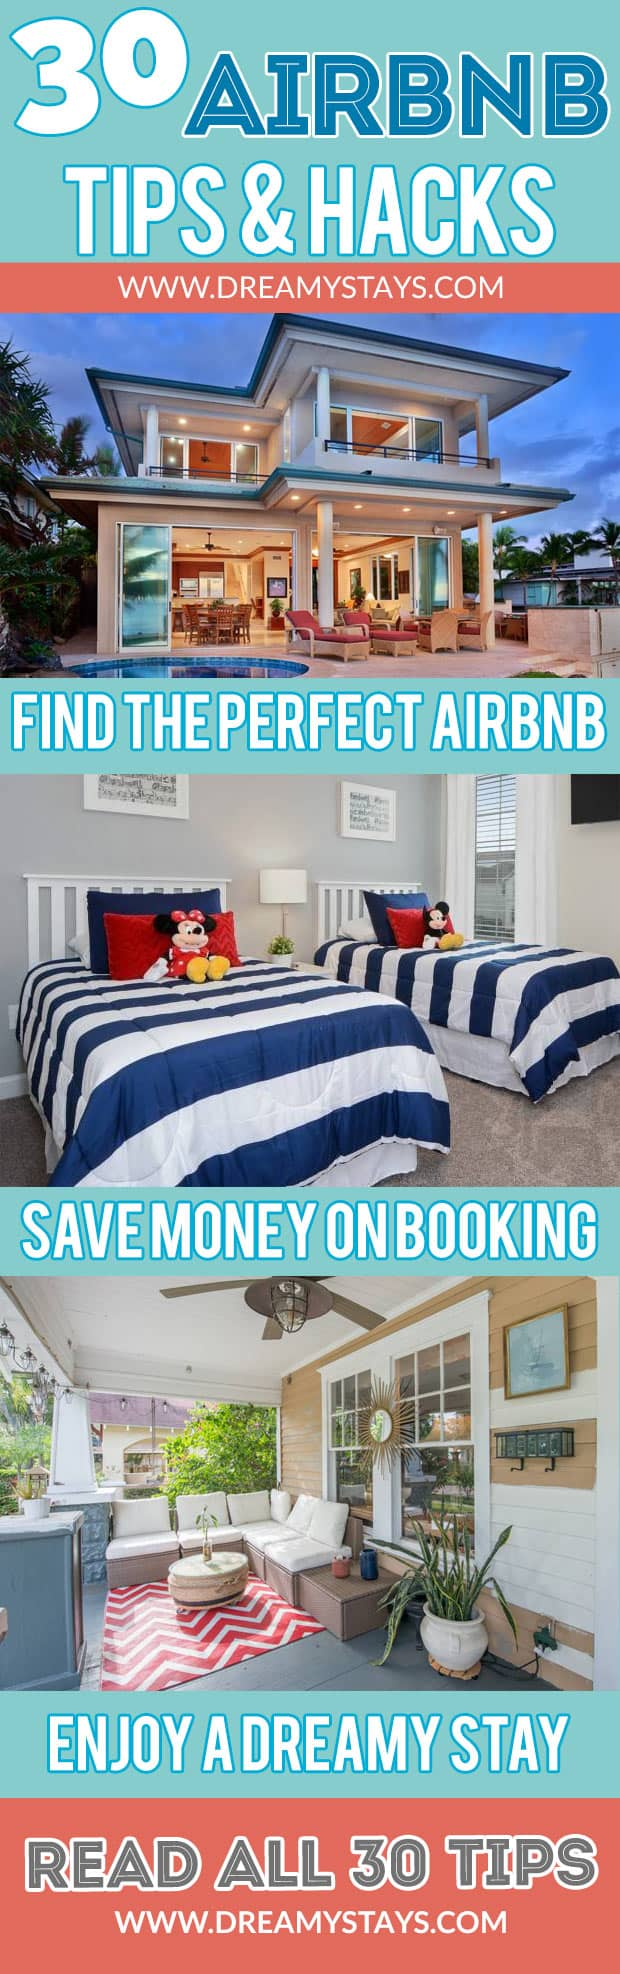 30 Airbnb Tips, Hacks & Secrets for First Time Guests